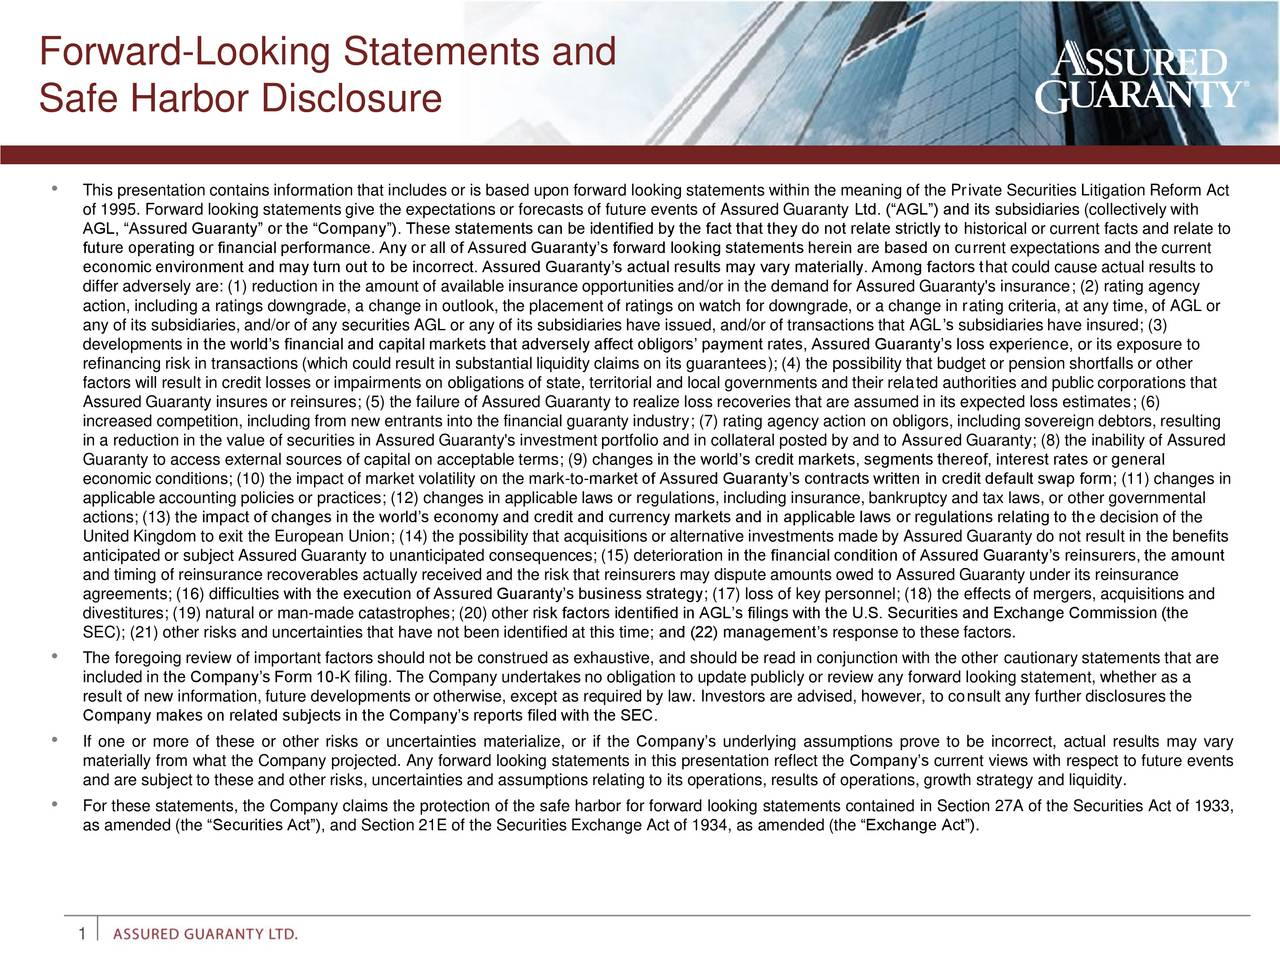 Safe Harbor Disclosure This presentation contains information that includes or is based upon forward looking statements within the meaning of the Private Securities Litigation Reform Act of 1995. Forward looking statements give the expectations or forecasts of future events of Assured Guaranty Ltd. (AGL) and its subsidiaries (collectively with AGL, Assured Guaranty or the Company). These statements can be identified by the fact that they do not relate strictly to historical or current facts and relate to future operating or financial performance. Any or all of Assured Guarantys forward looking statements herein are based on current expectations and the current economic environment and may turn out to be incorrect. Assured Guarantys actual results may vary materially. Among factors that could cause actual results to differ adversely are: (1) reduction in the amount of available insurance opportunities and/or in the demand for Assured Guaranty's insurance; (2) rating agency action, including a ratings downgrade, a change in outlook, the placement of ratings on watch for downgrade, or a change in rating criteria, at any time, of AGL or any of its subsidiaries, and/or of any securities AGL or any of its subsidiaries have issued, and/or of transactions that AGLs subsidiaries have insured; (3) developments in the worlds financial and capital markets that adversely affect obligors payment rates, Assured Guarantys loss experience, or its exposure to refinancing risk in transactions (which could result in substantial liquidity claims on its guarantees); (4) the possibility that budget or pension shortfalls or other factors will result in credit losses or impairments on obligations of state, territorial and local governments and their related authorities and public corporations that Assured Guaranty insures or reinsures; (5) the failure of Assured Guaranty to realize loss recoveries that are assumed in its expected loss estimates; (6) increased competition, including from new